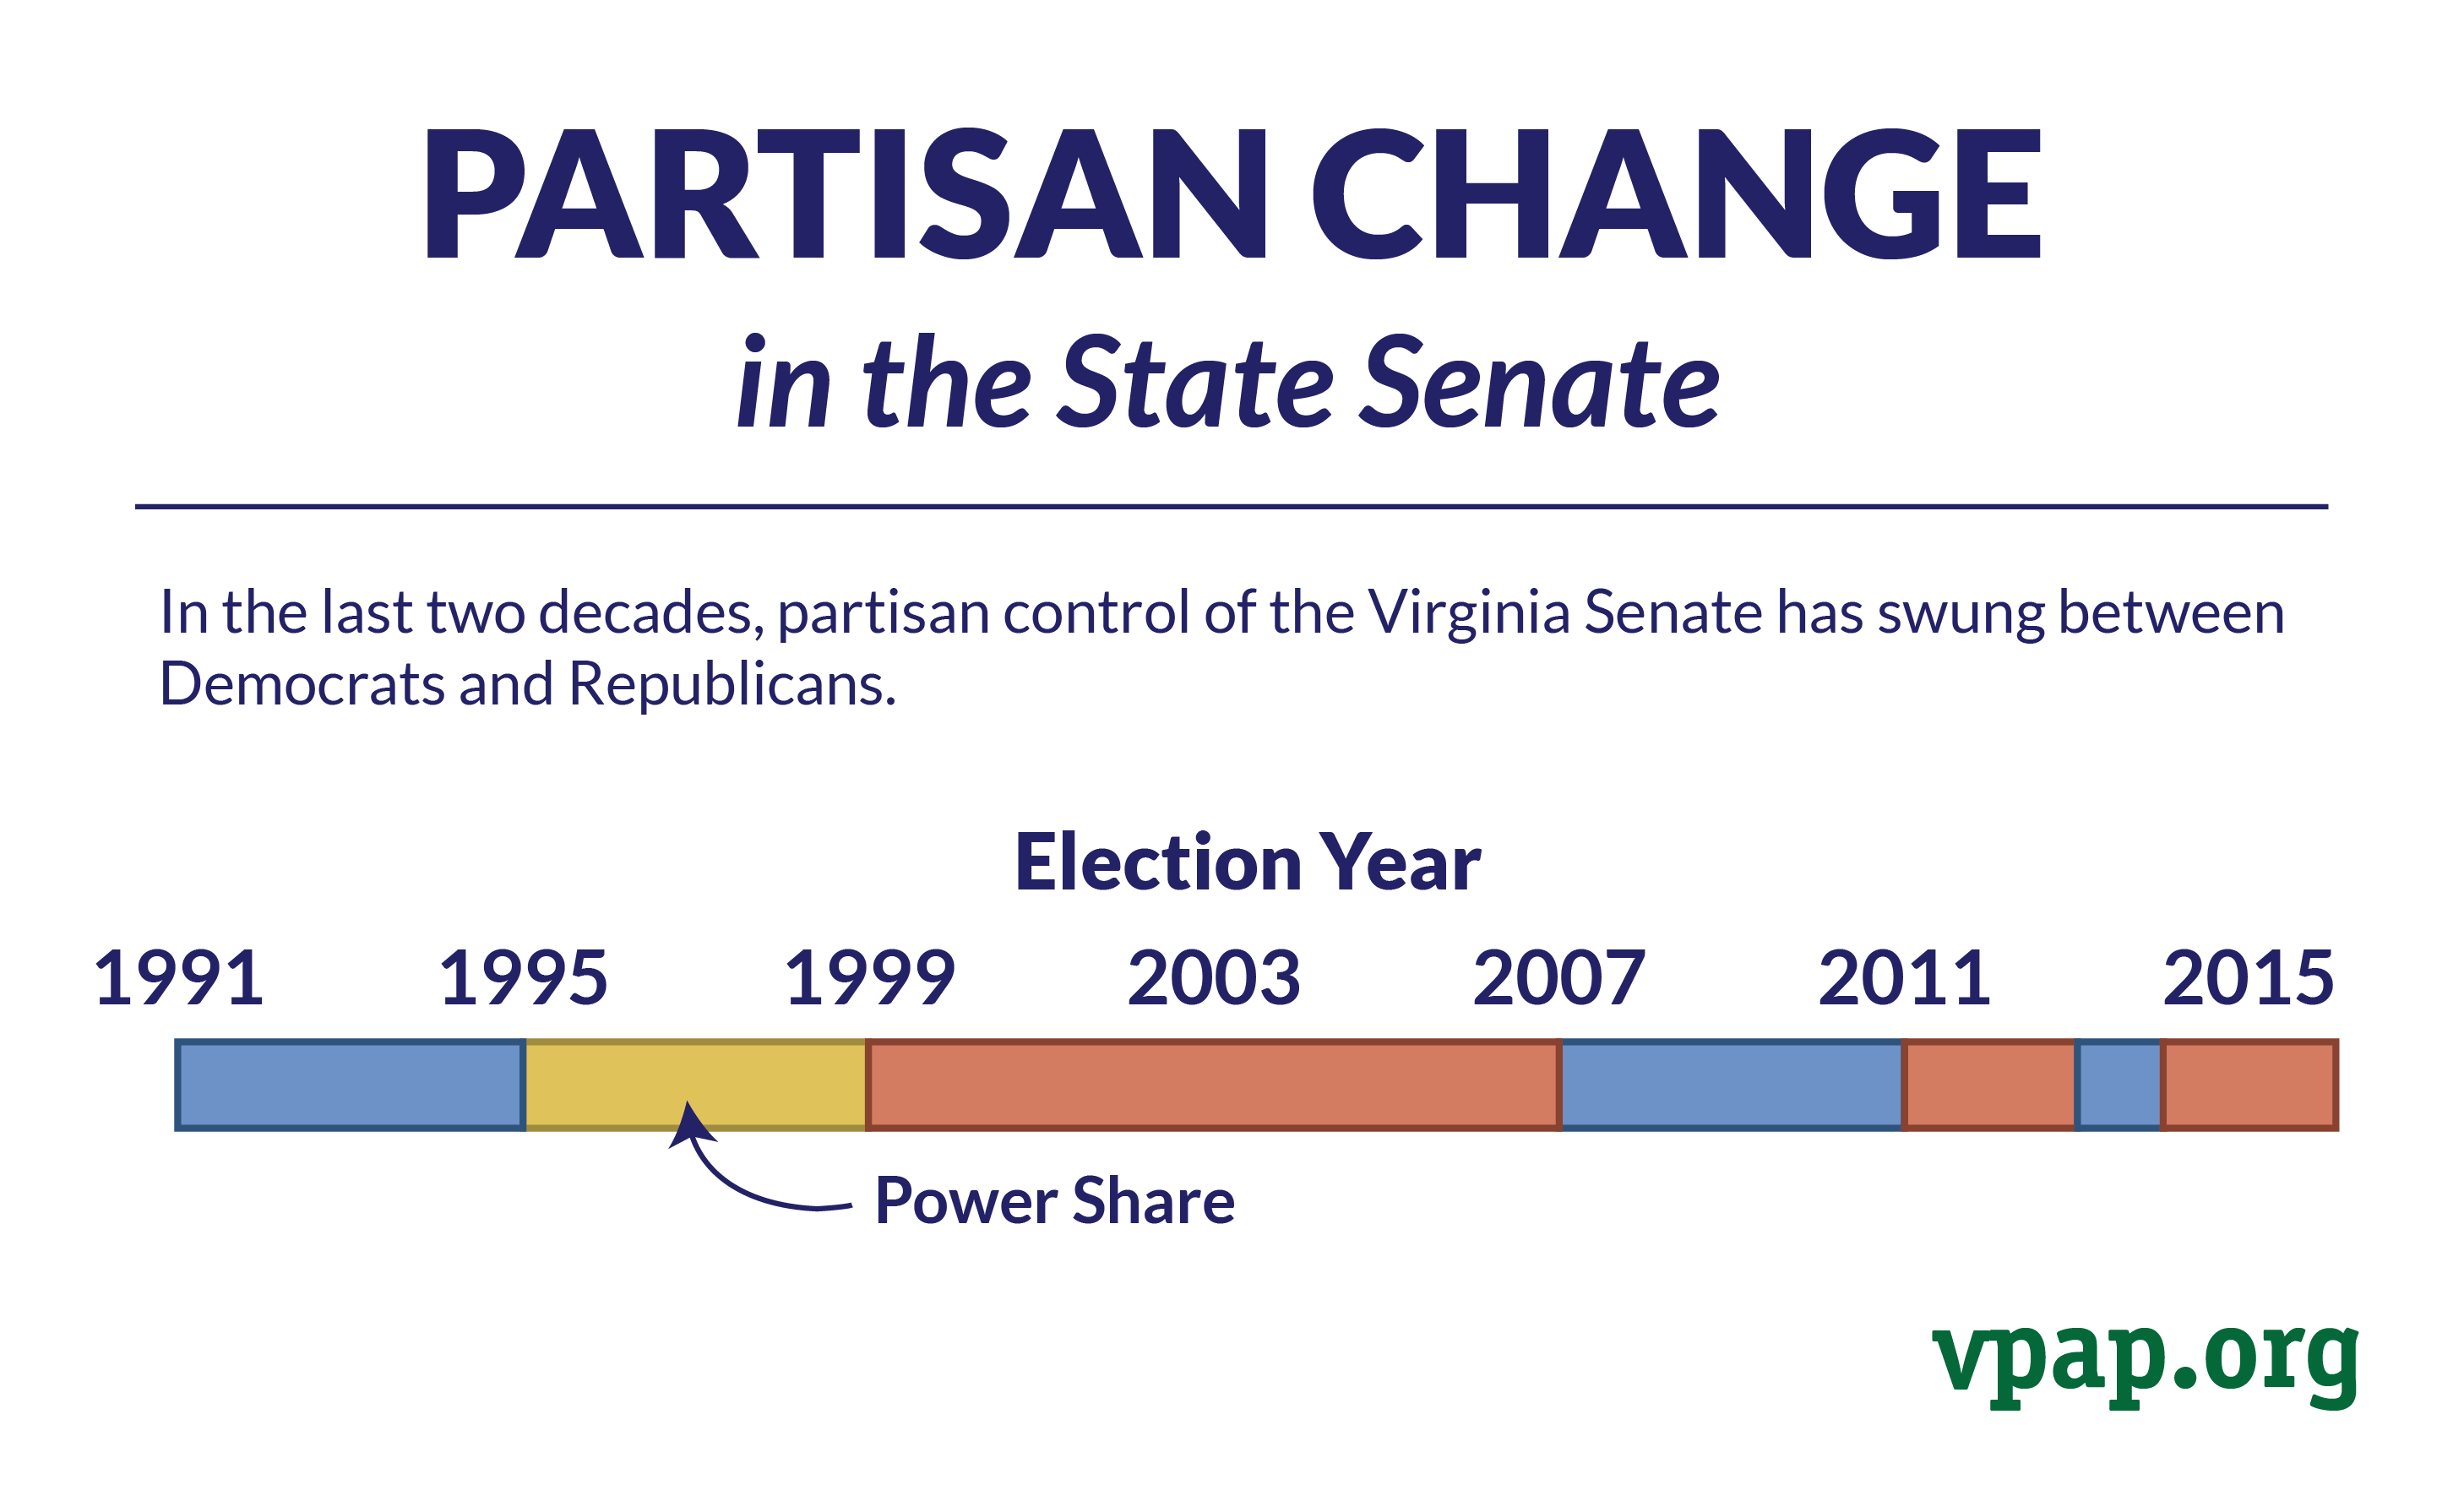 Partisan Change in the Virginia Senate